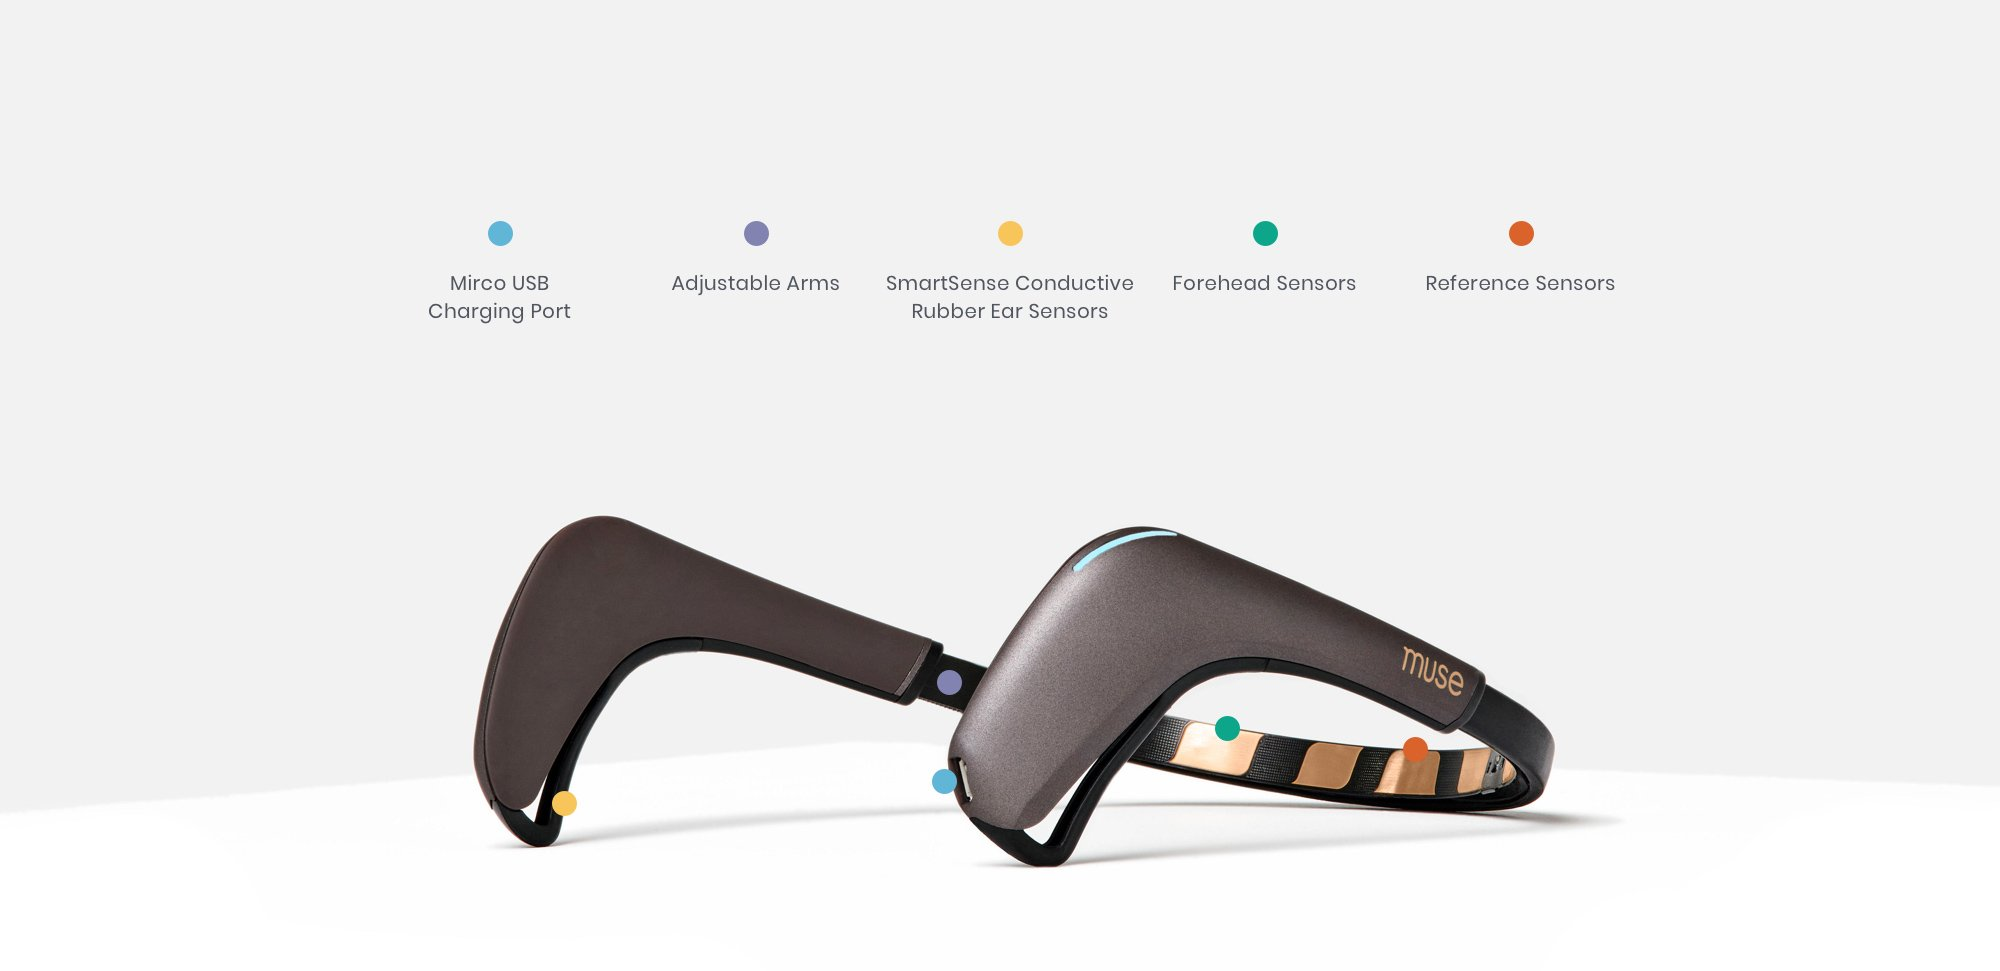 Deeper Insights Through Real-Time Feedback